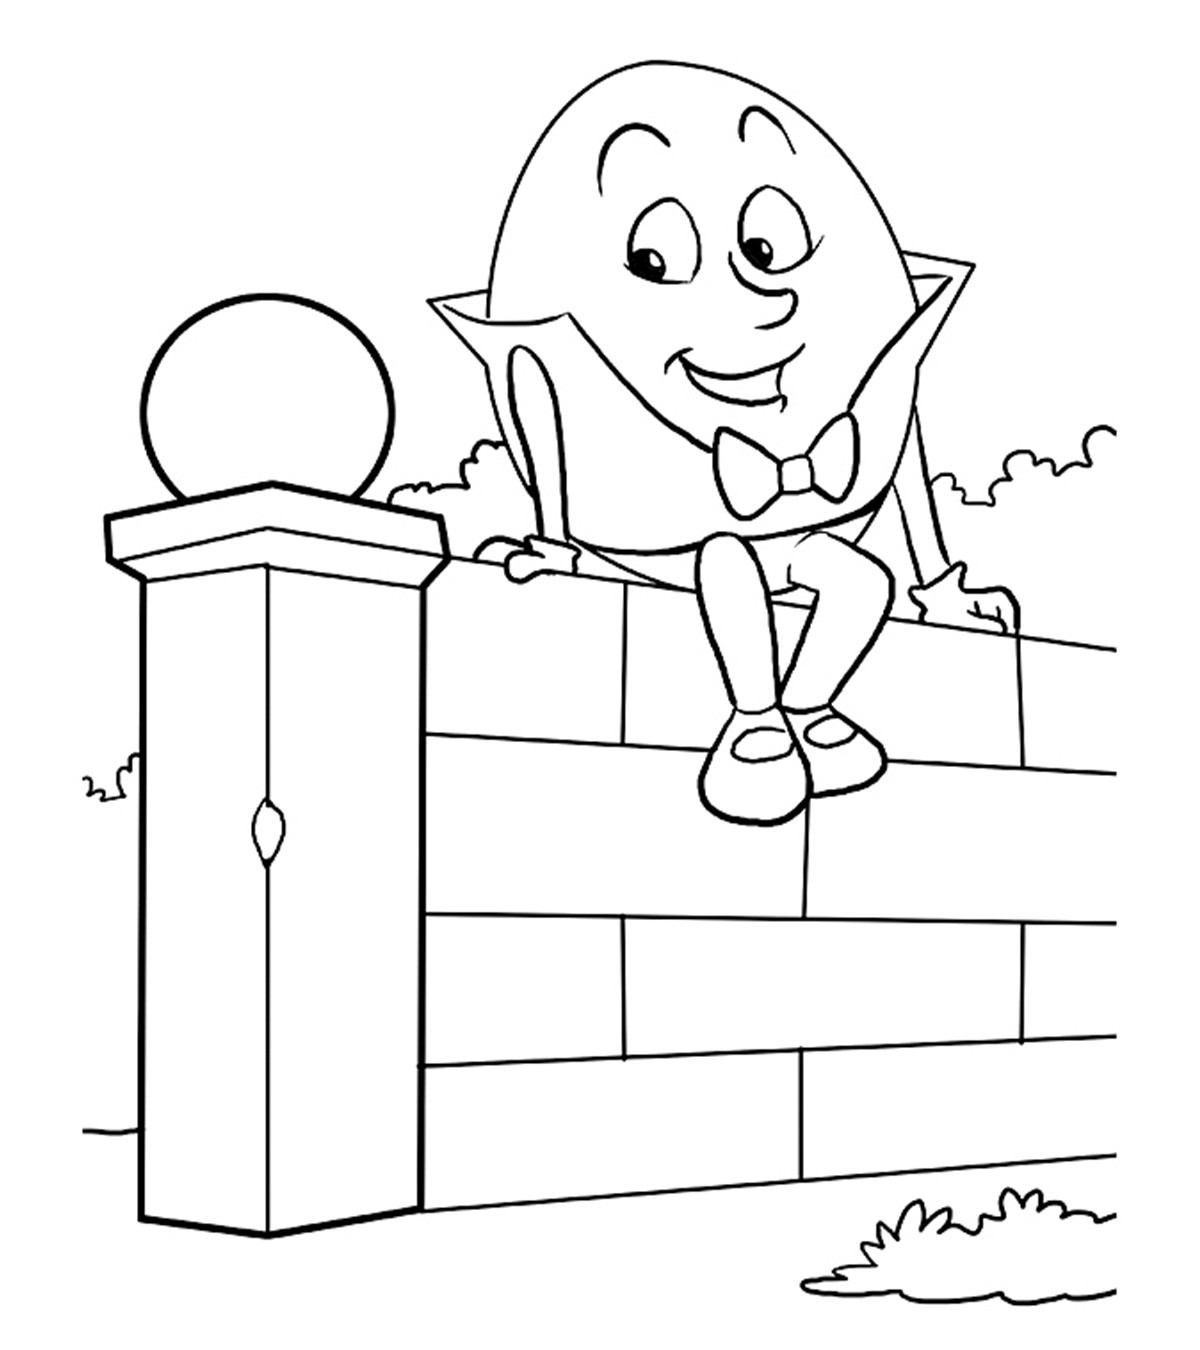 Humpty Dumpty Printable Book 10 Adorable Humpty Dumpty Coloring Pages for toddlers